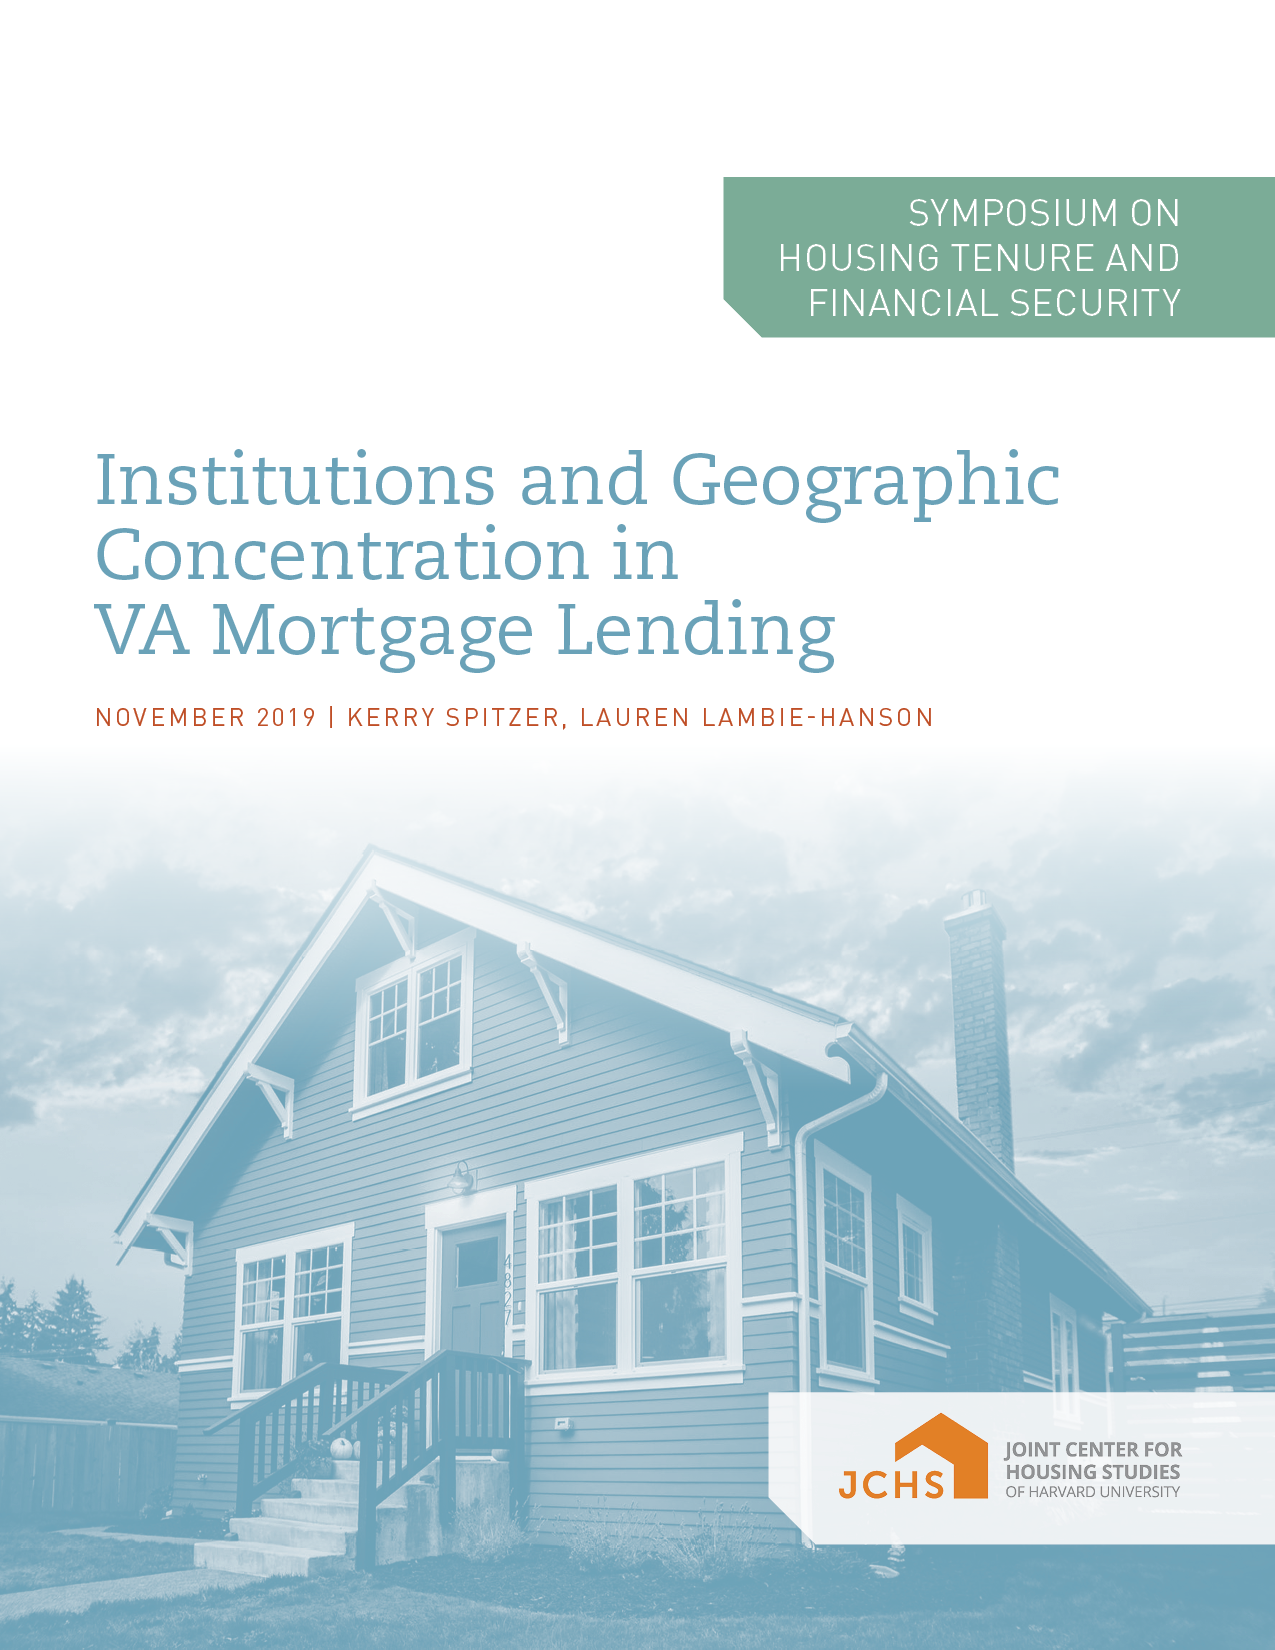 Institutions and Geographic Concentration in VA Mortgage Lending